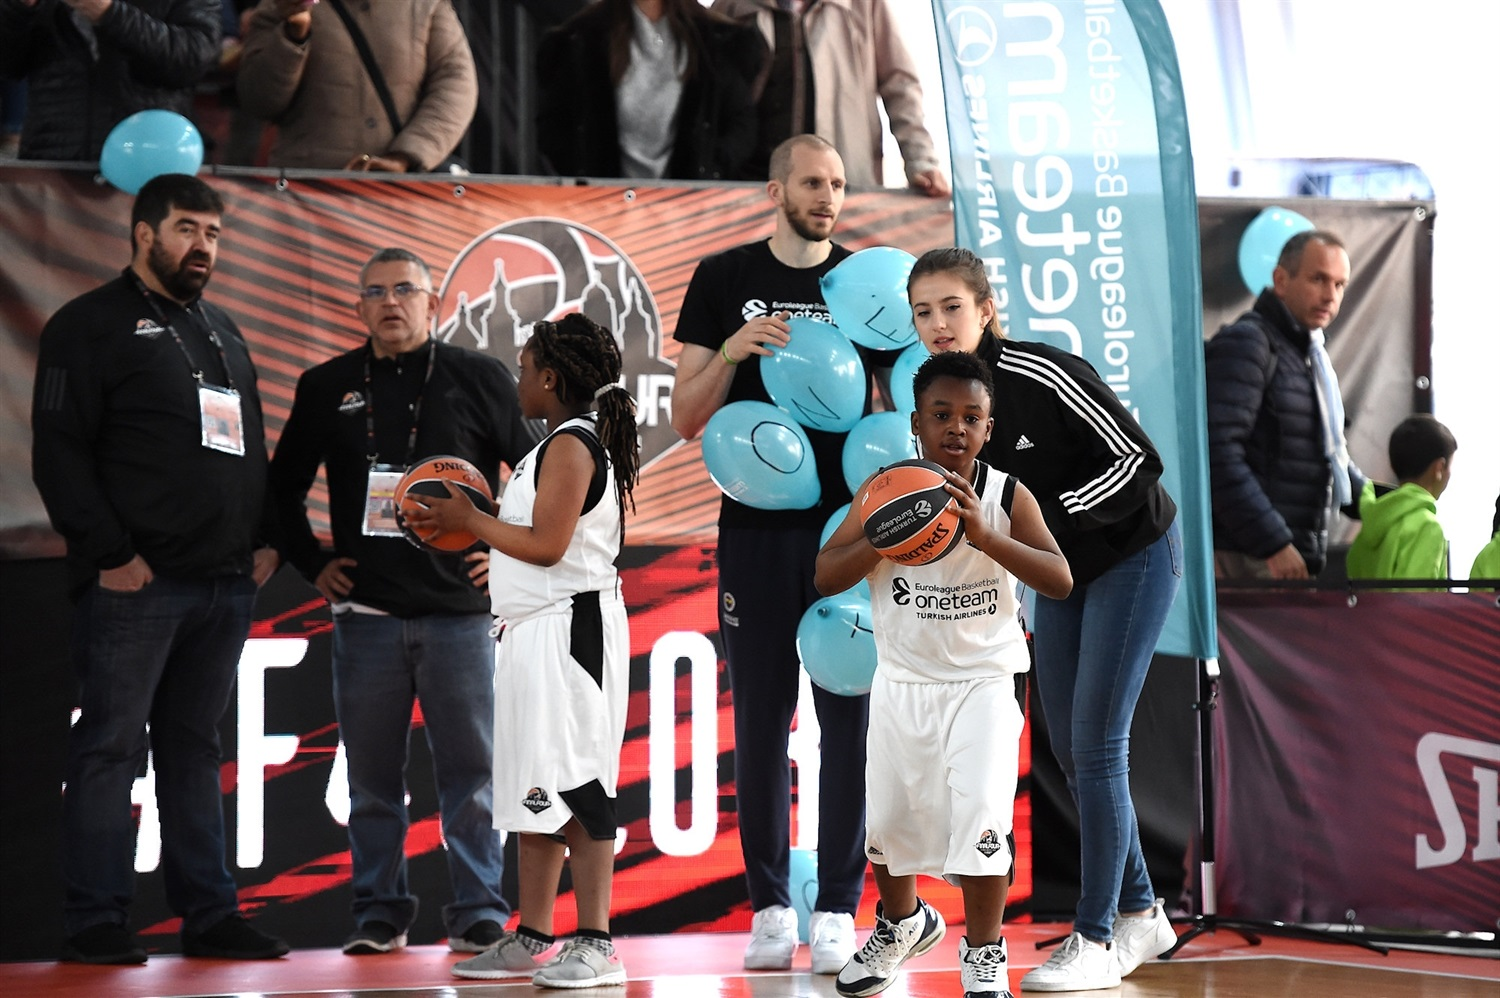 Final Four stars support One Team - Final Four Vitoria-Gasteiz 2019 - EB18